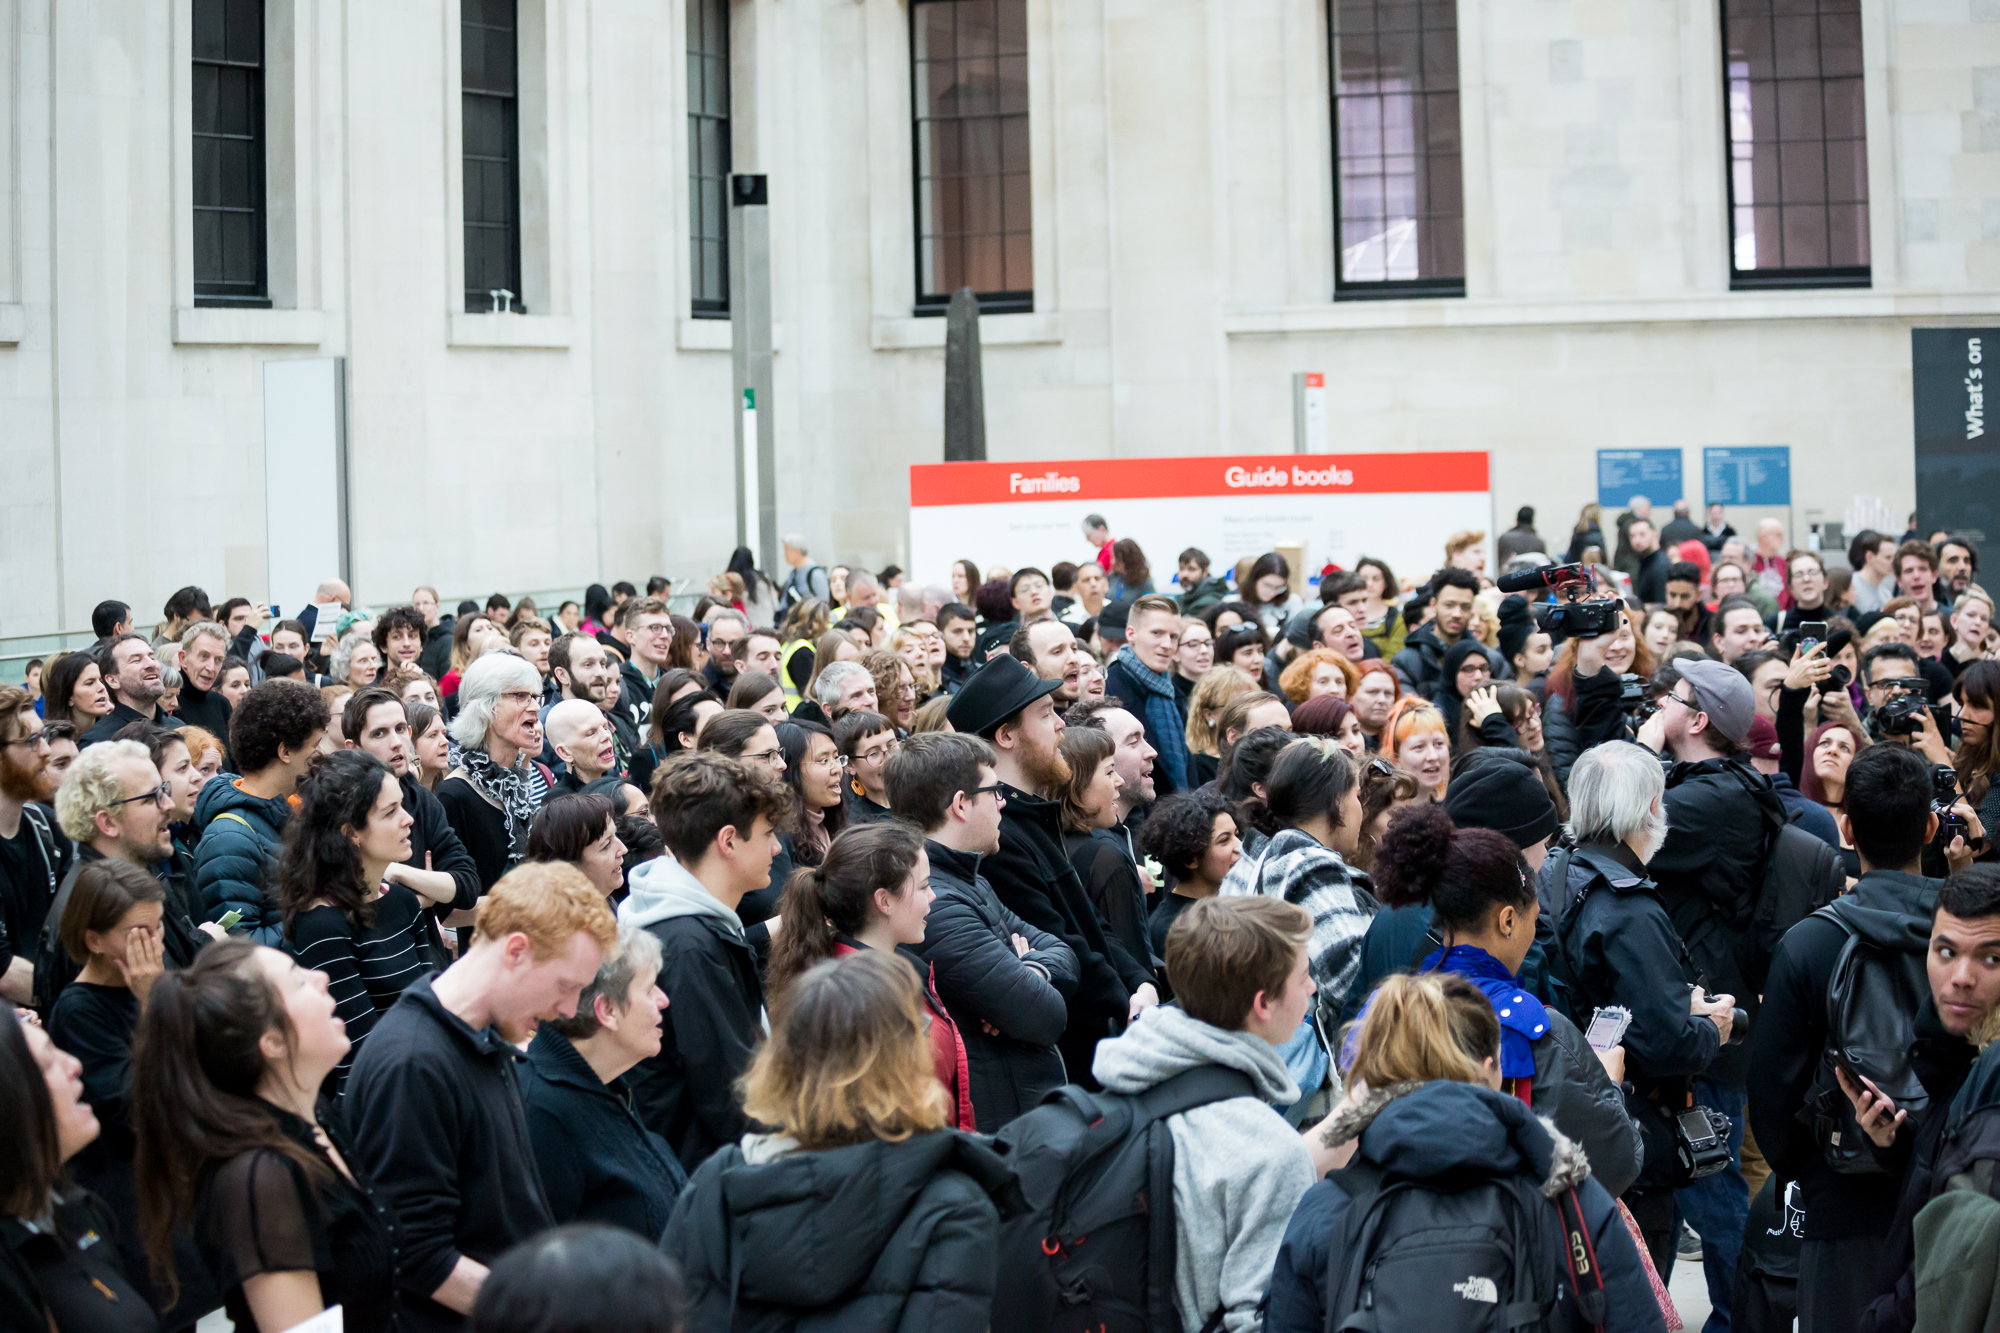 hundreds of protestors gather at the British Museum